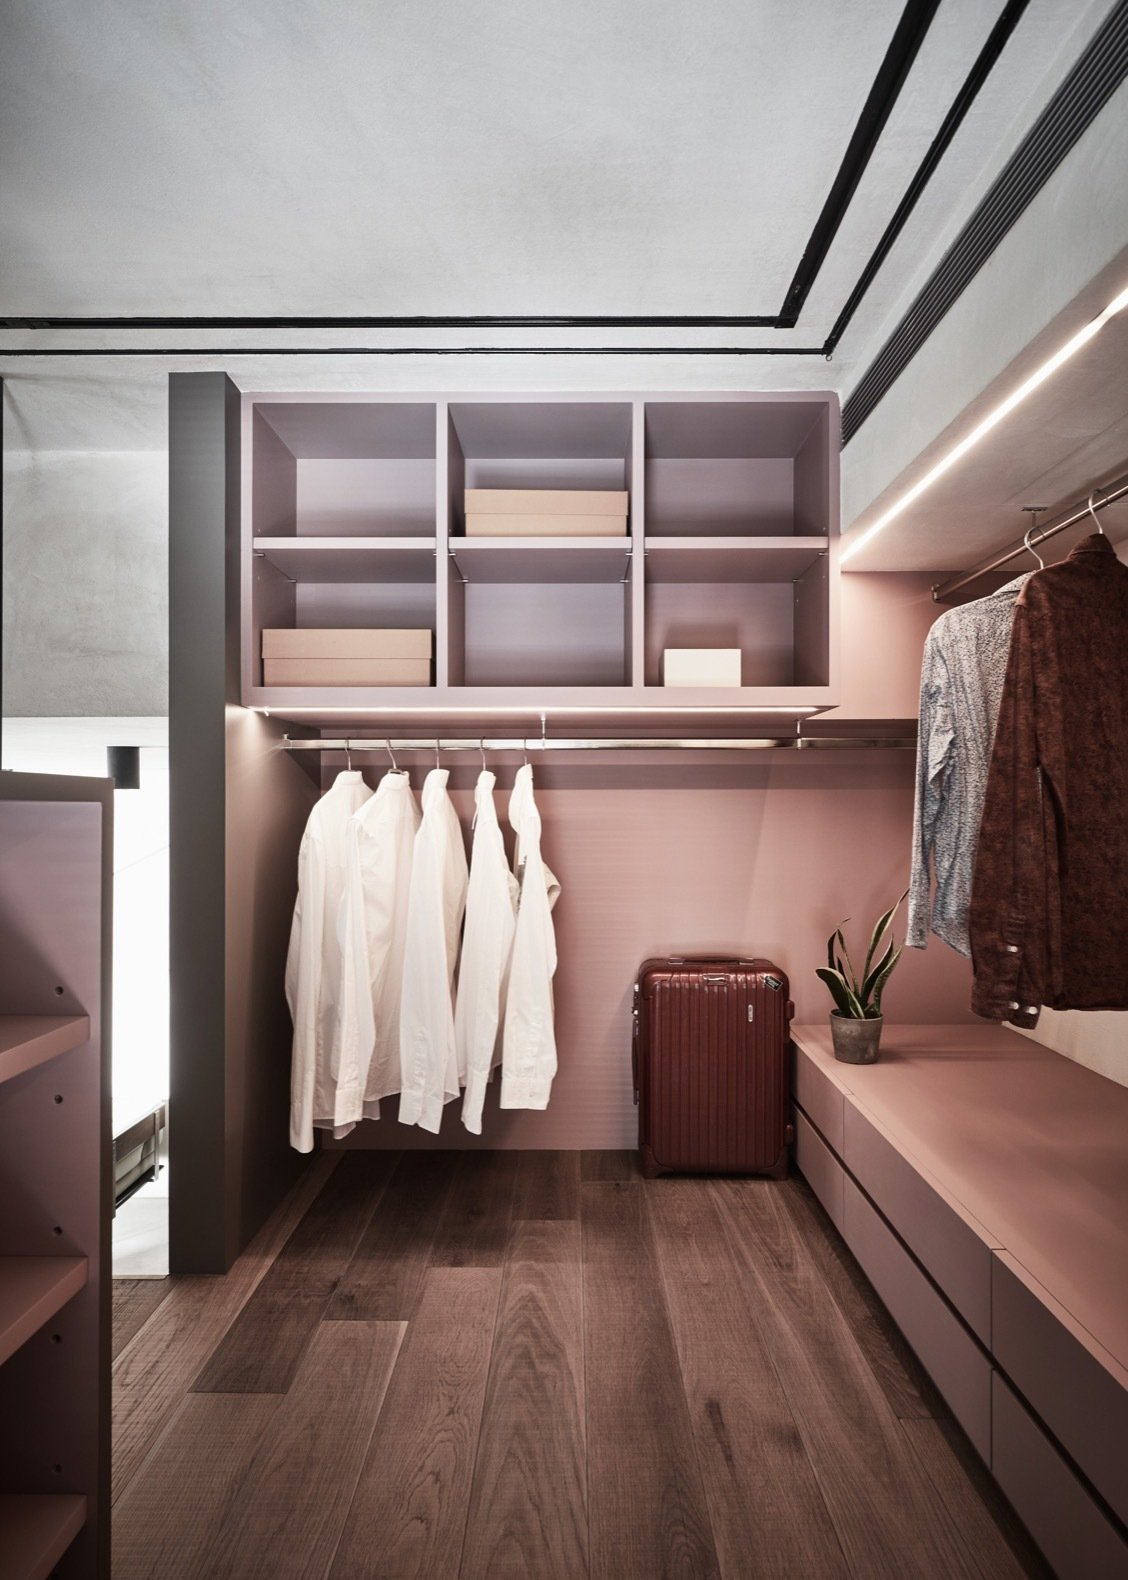 Storage Room, Closet Storage Type, and Shelves Storage Type Hidden storage and recessed lighting were key in giving the dressing room a clean and contemporary appearance.  Photo 5 of 12 in A Tiny Apartment Transforms Into a Stylish, Space-Saving Bachelor Pad For $84K